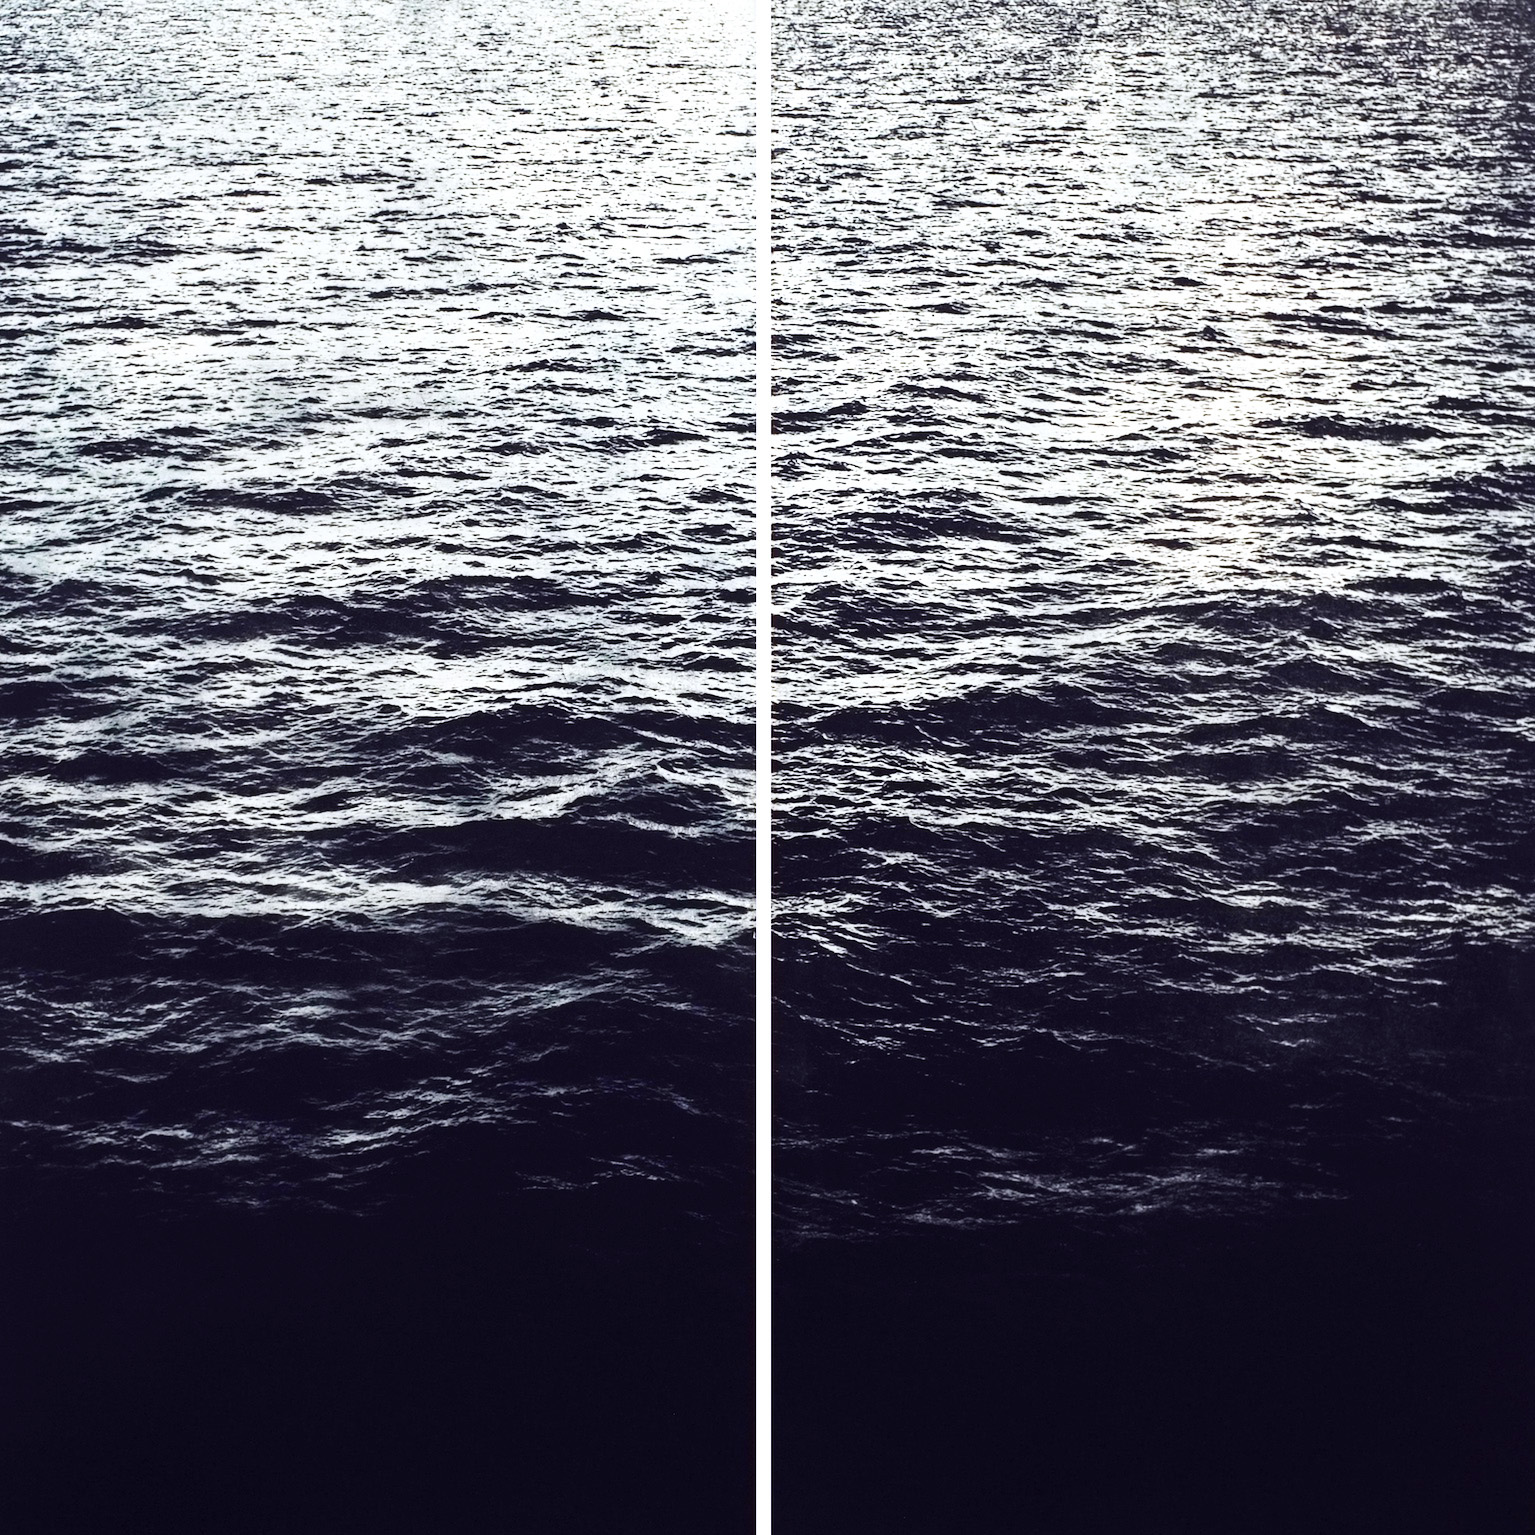 amphidromic point (diptych)